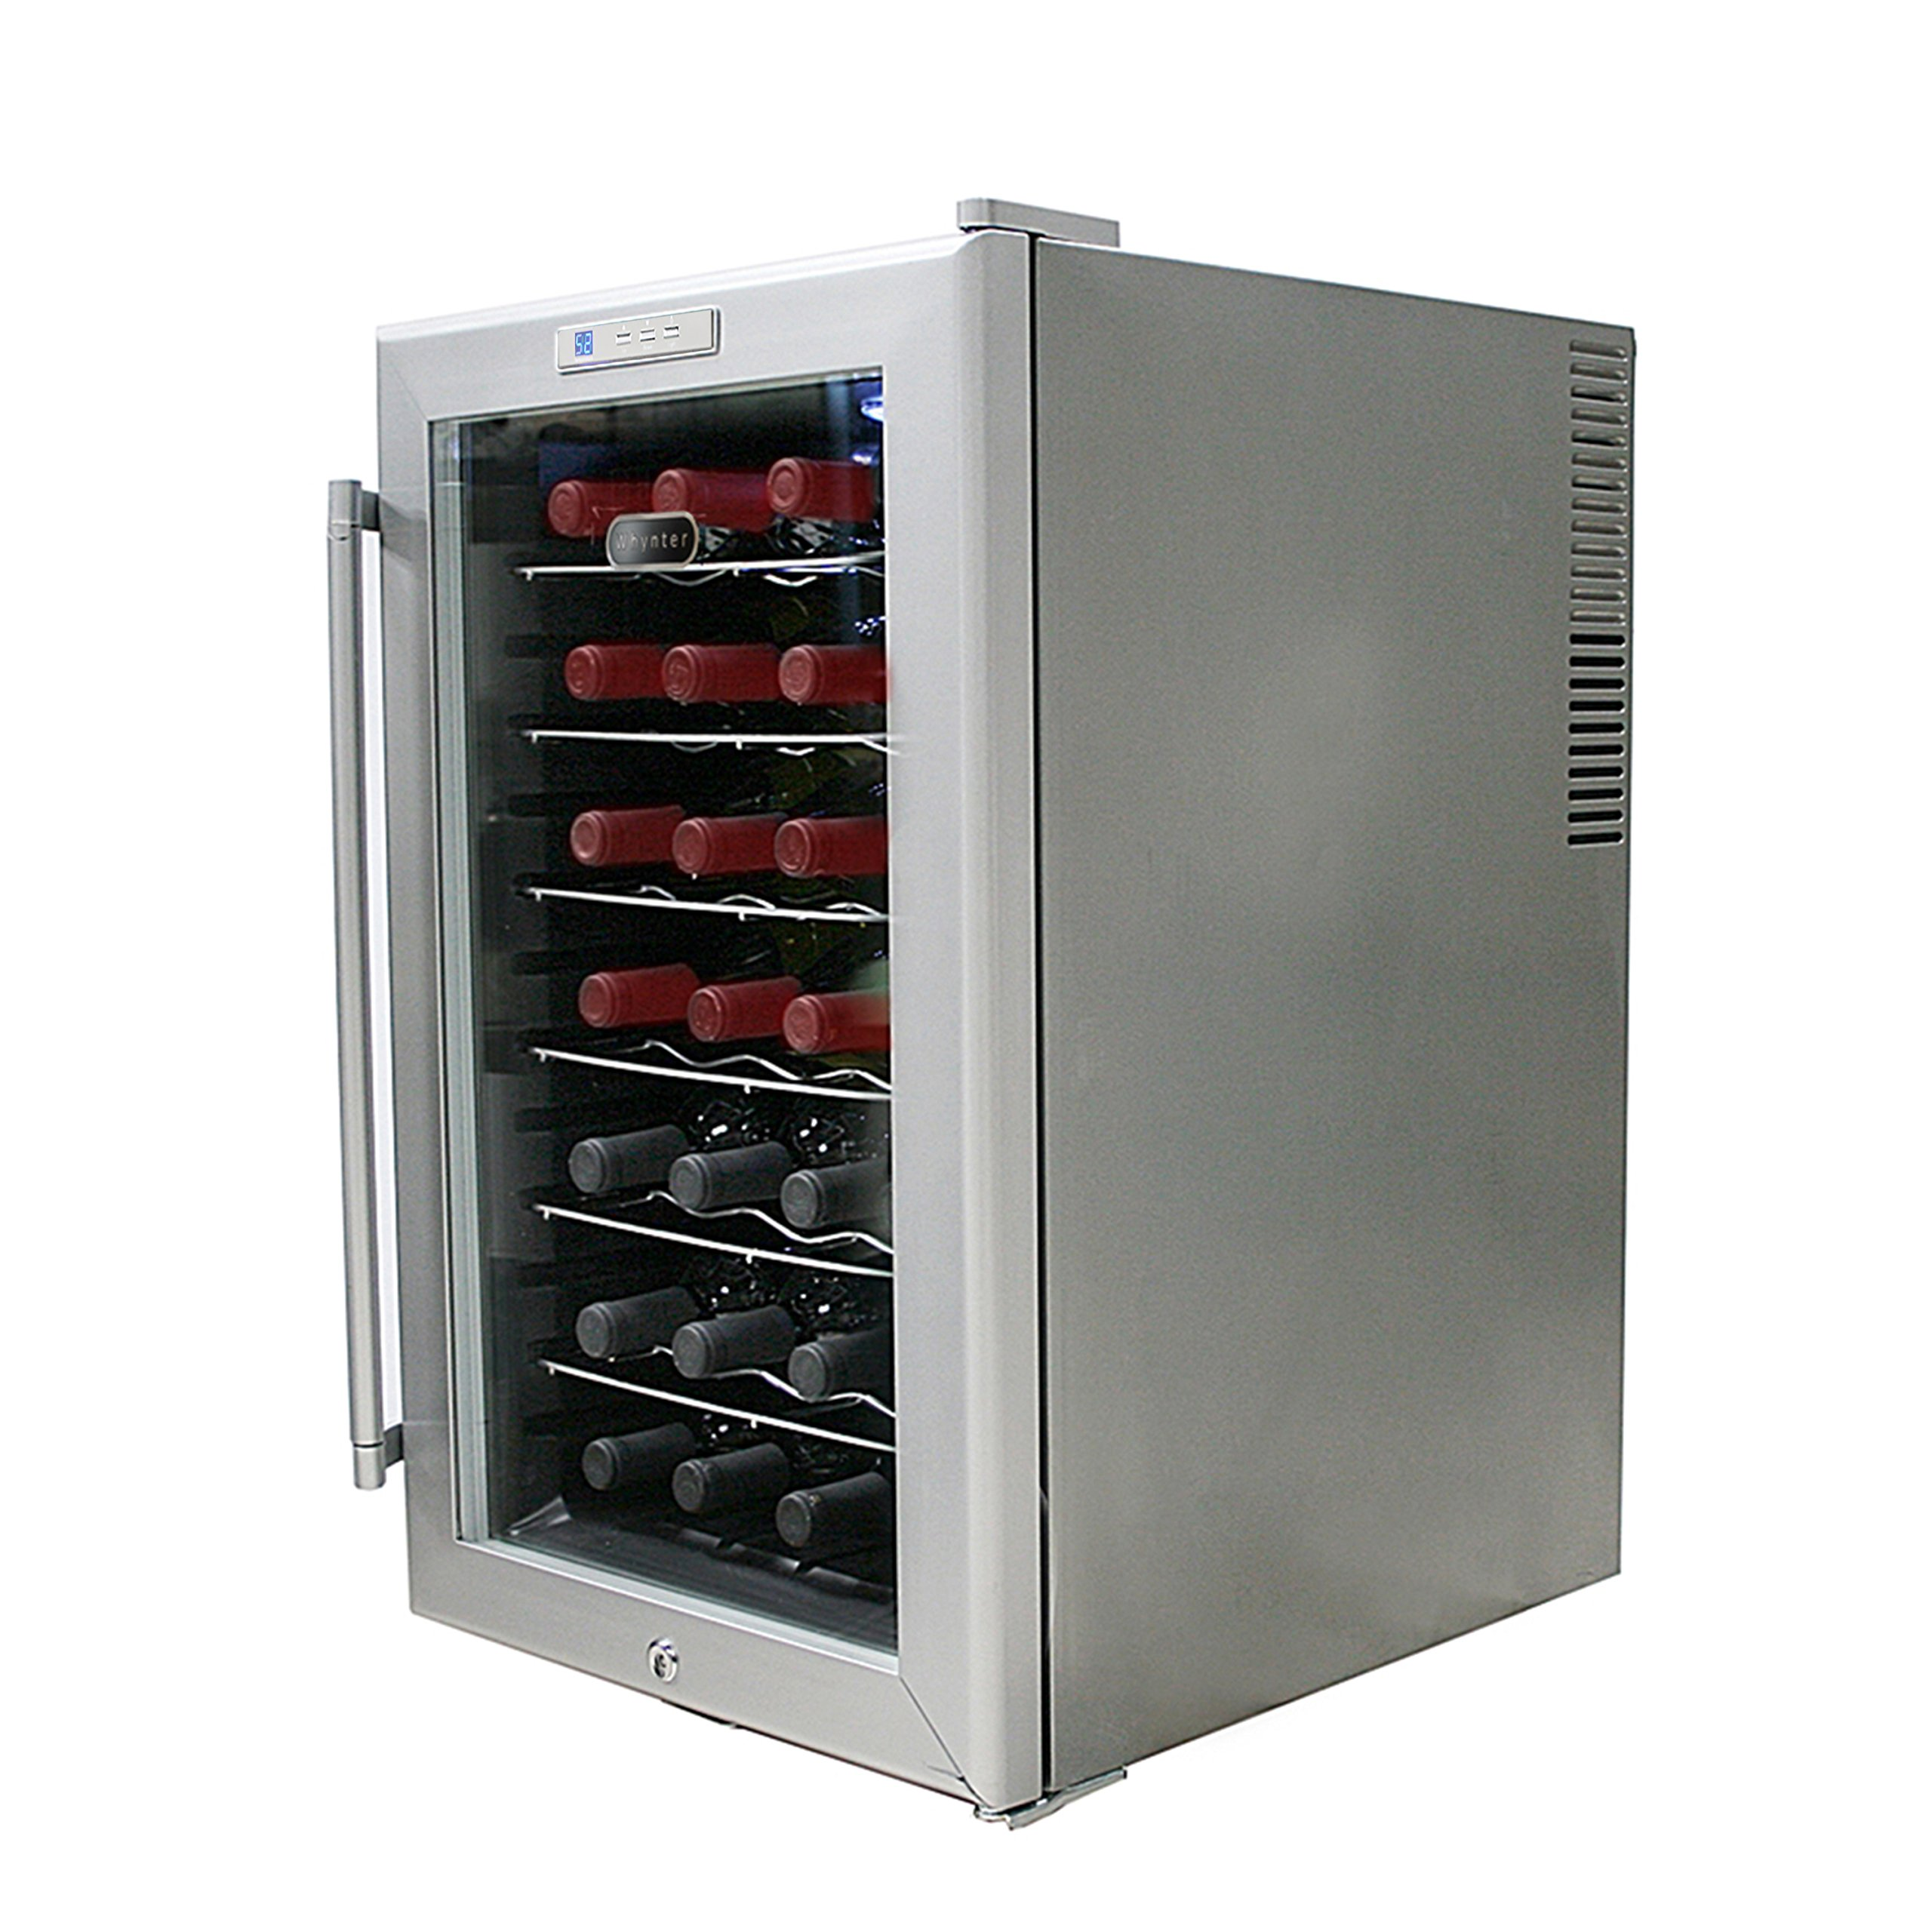 Whynter WC28S SNO 28 Bottle Wine Cooler, Platinum with Lock by Whynter (Image #6)